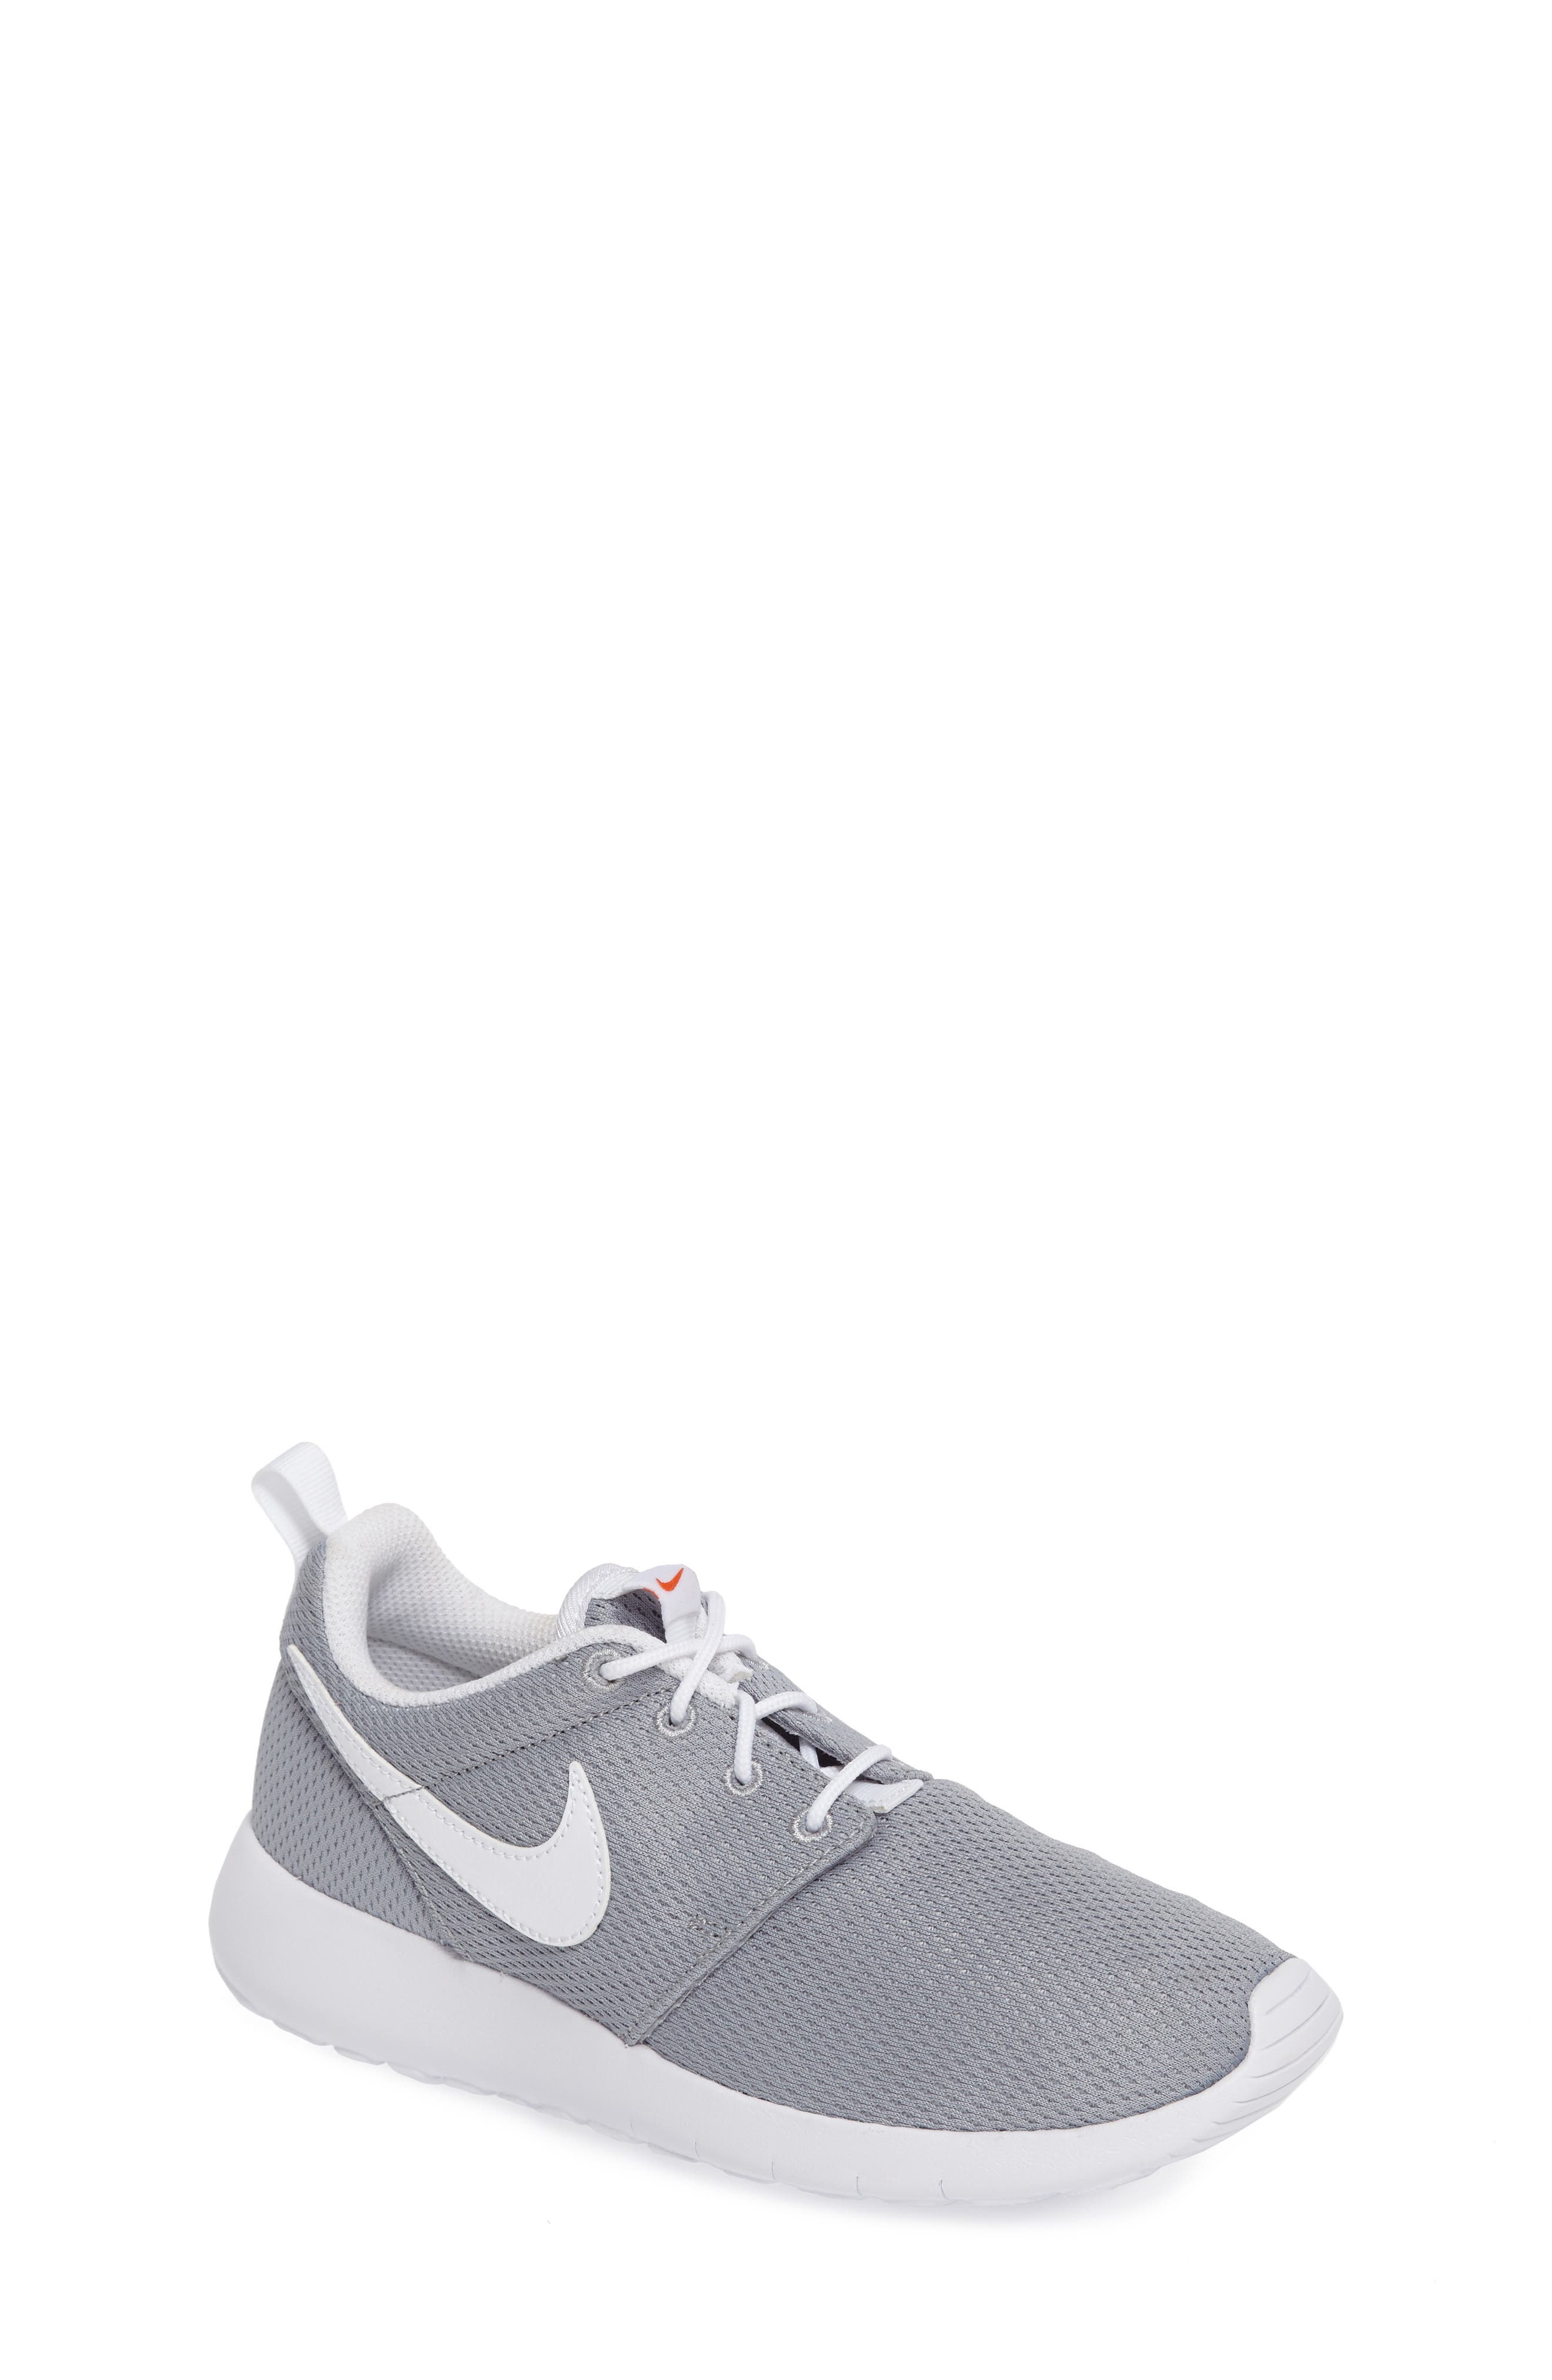 'Roshe Run' Sneaker,                             Main thumbnail 31, color,